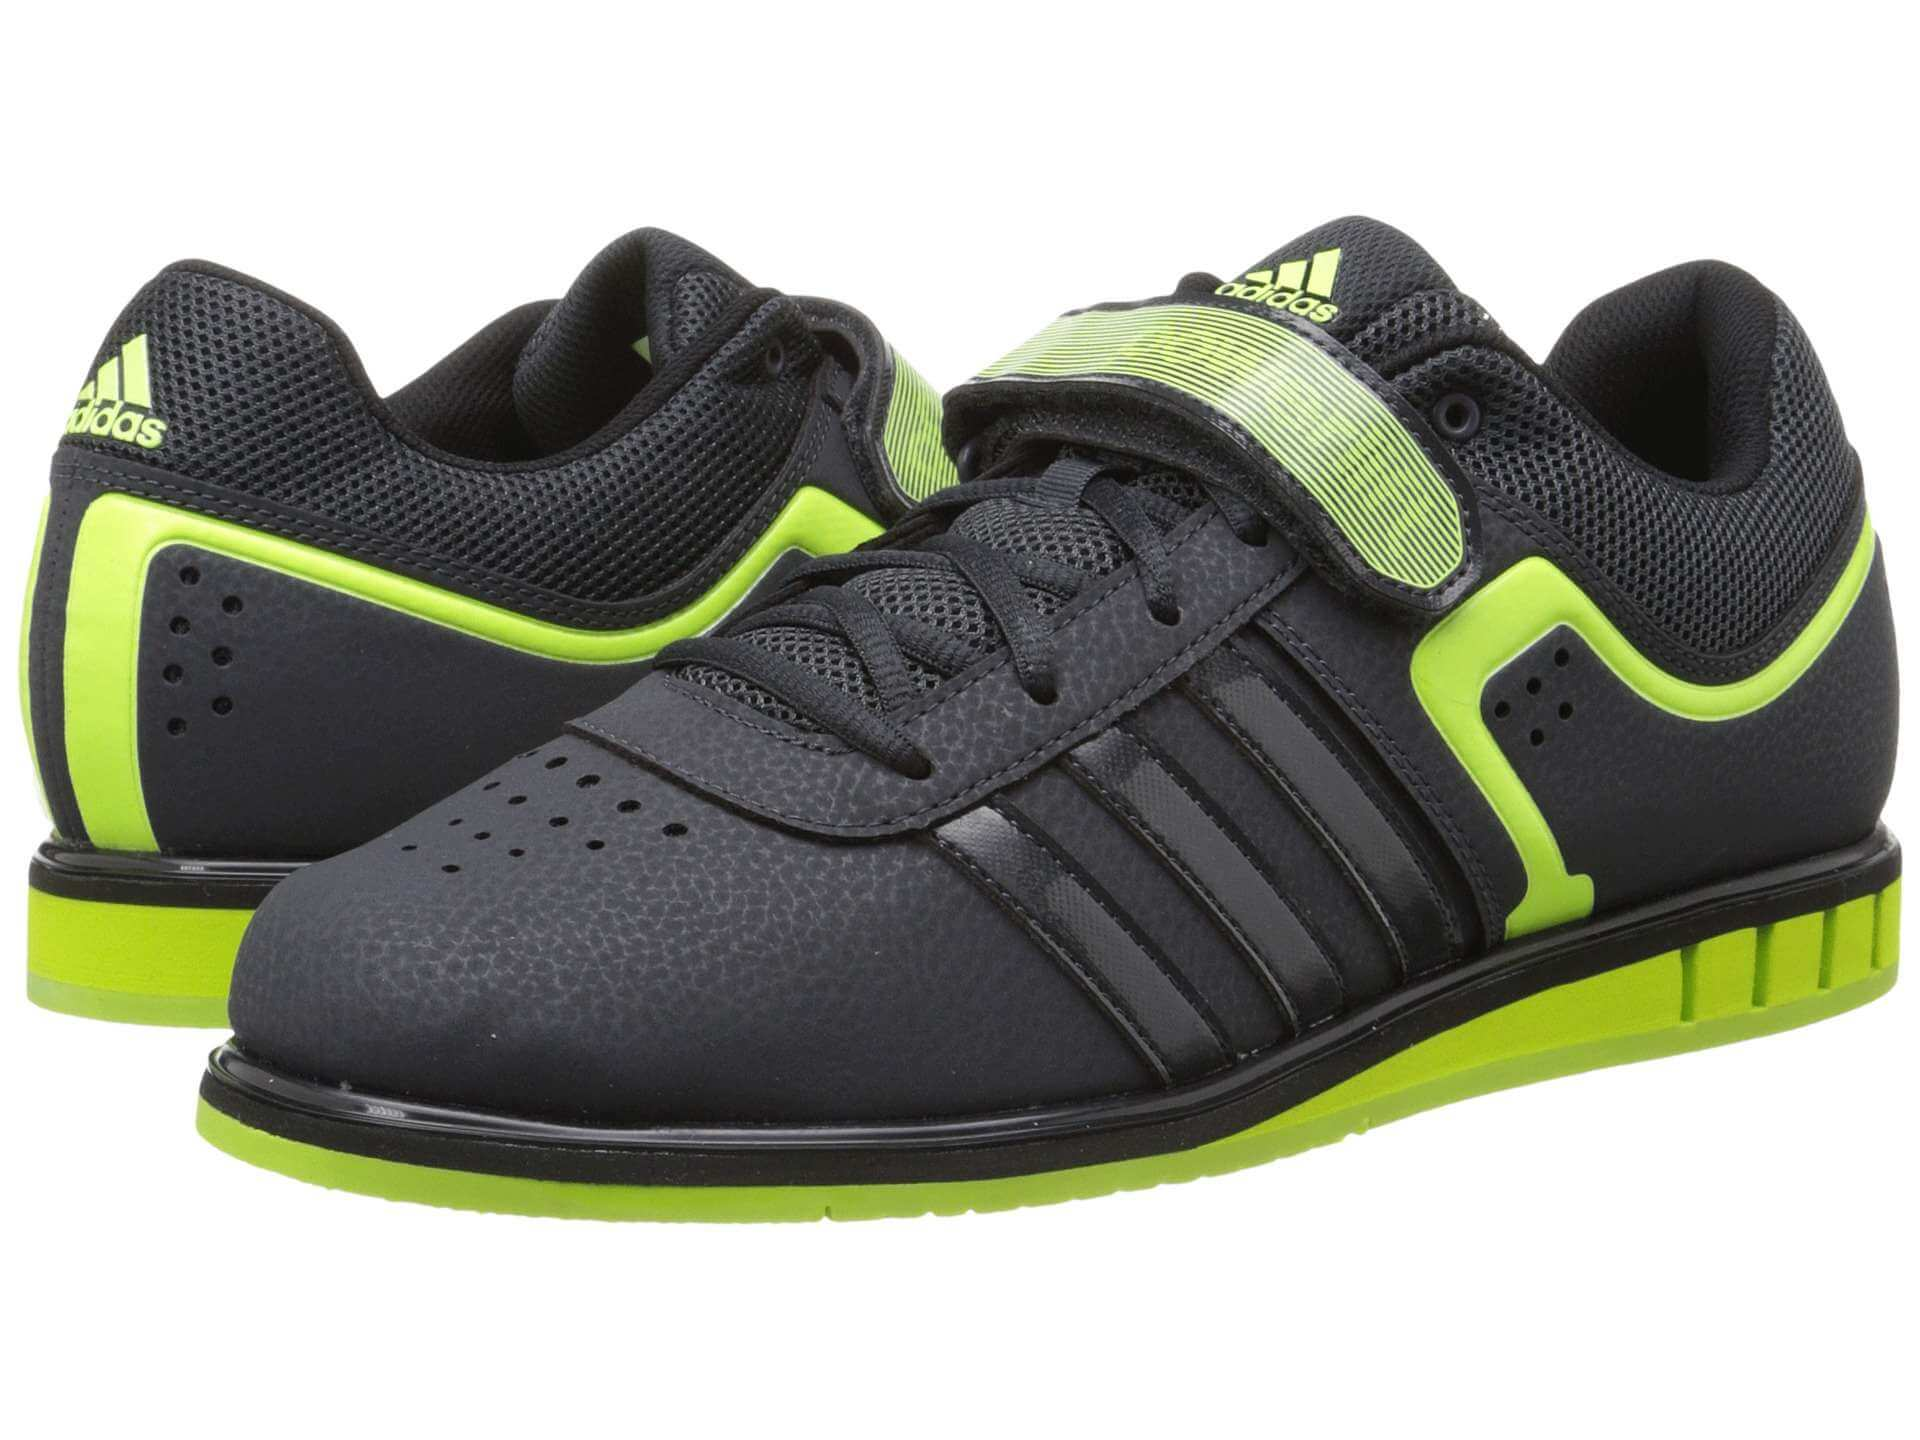 The Top 4 Best Weightlifting Shoes With Reviews - Weight Lifting ...